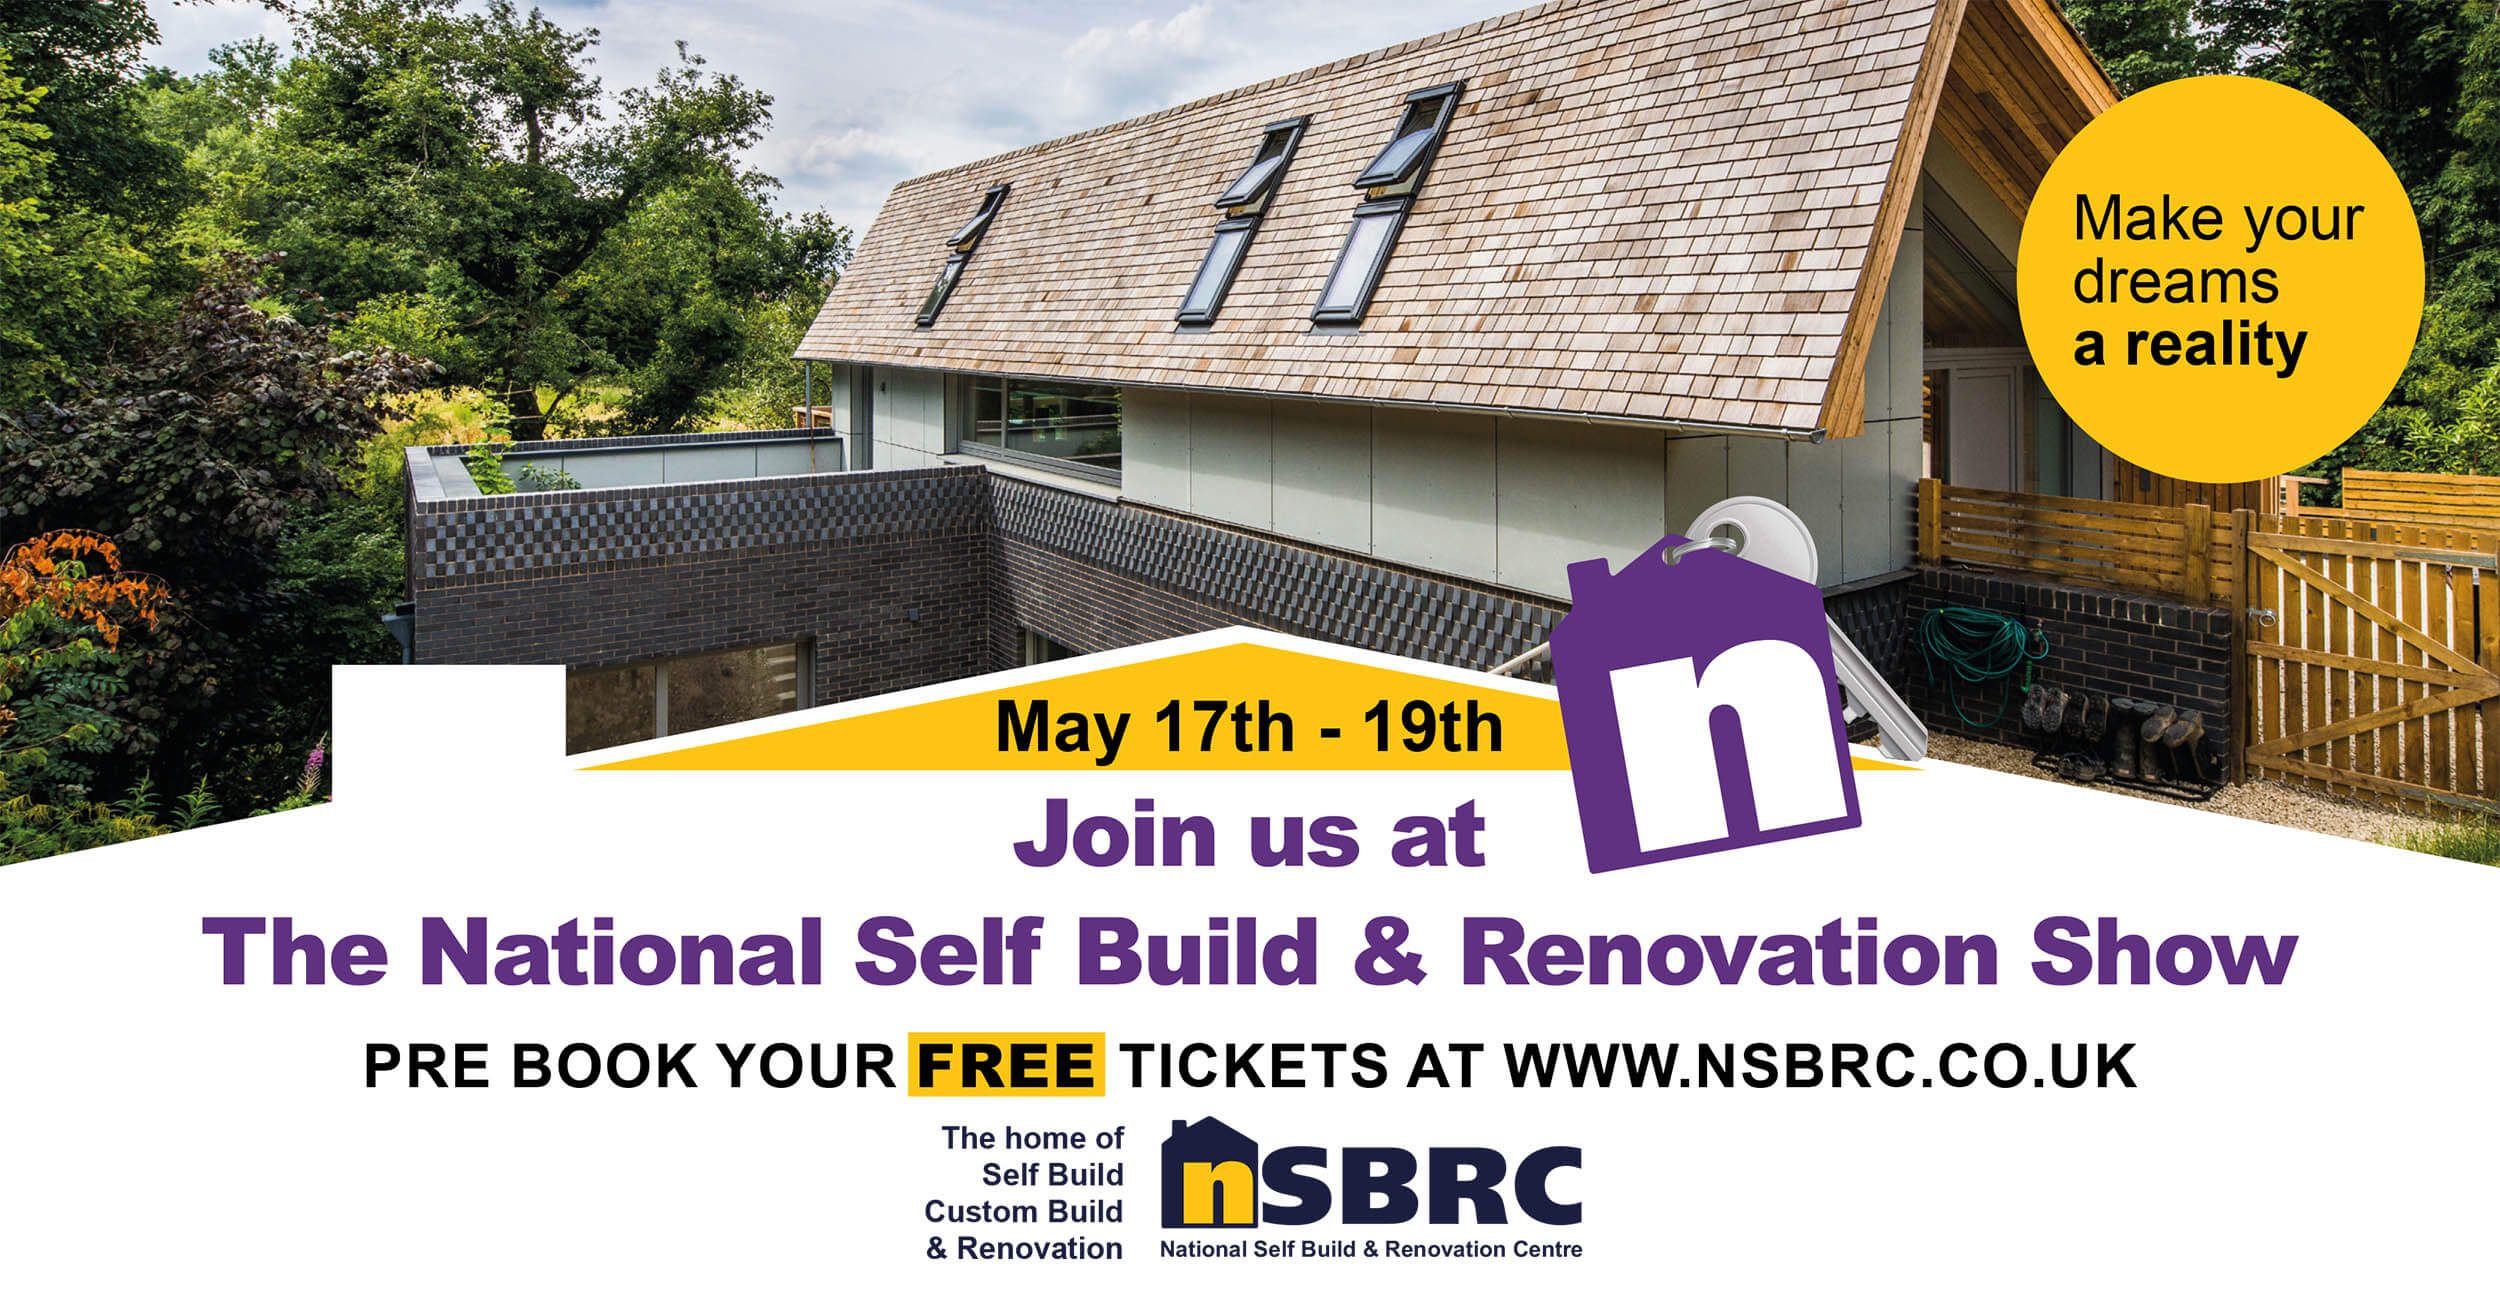 The National Self Build & Renovation Show May 2019. Visit Premier Loft Ladders on stand 168